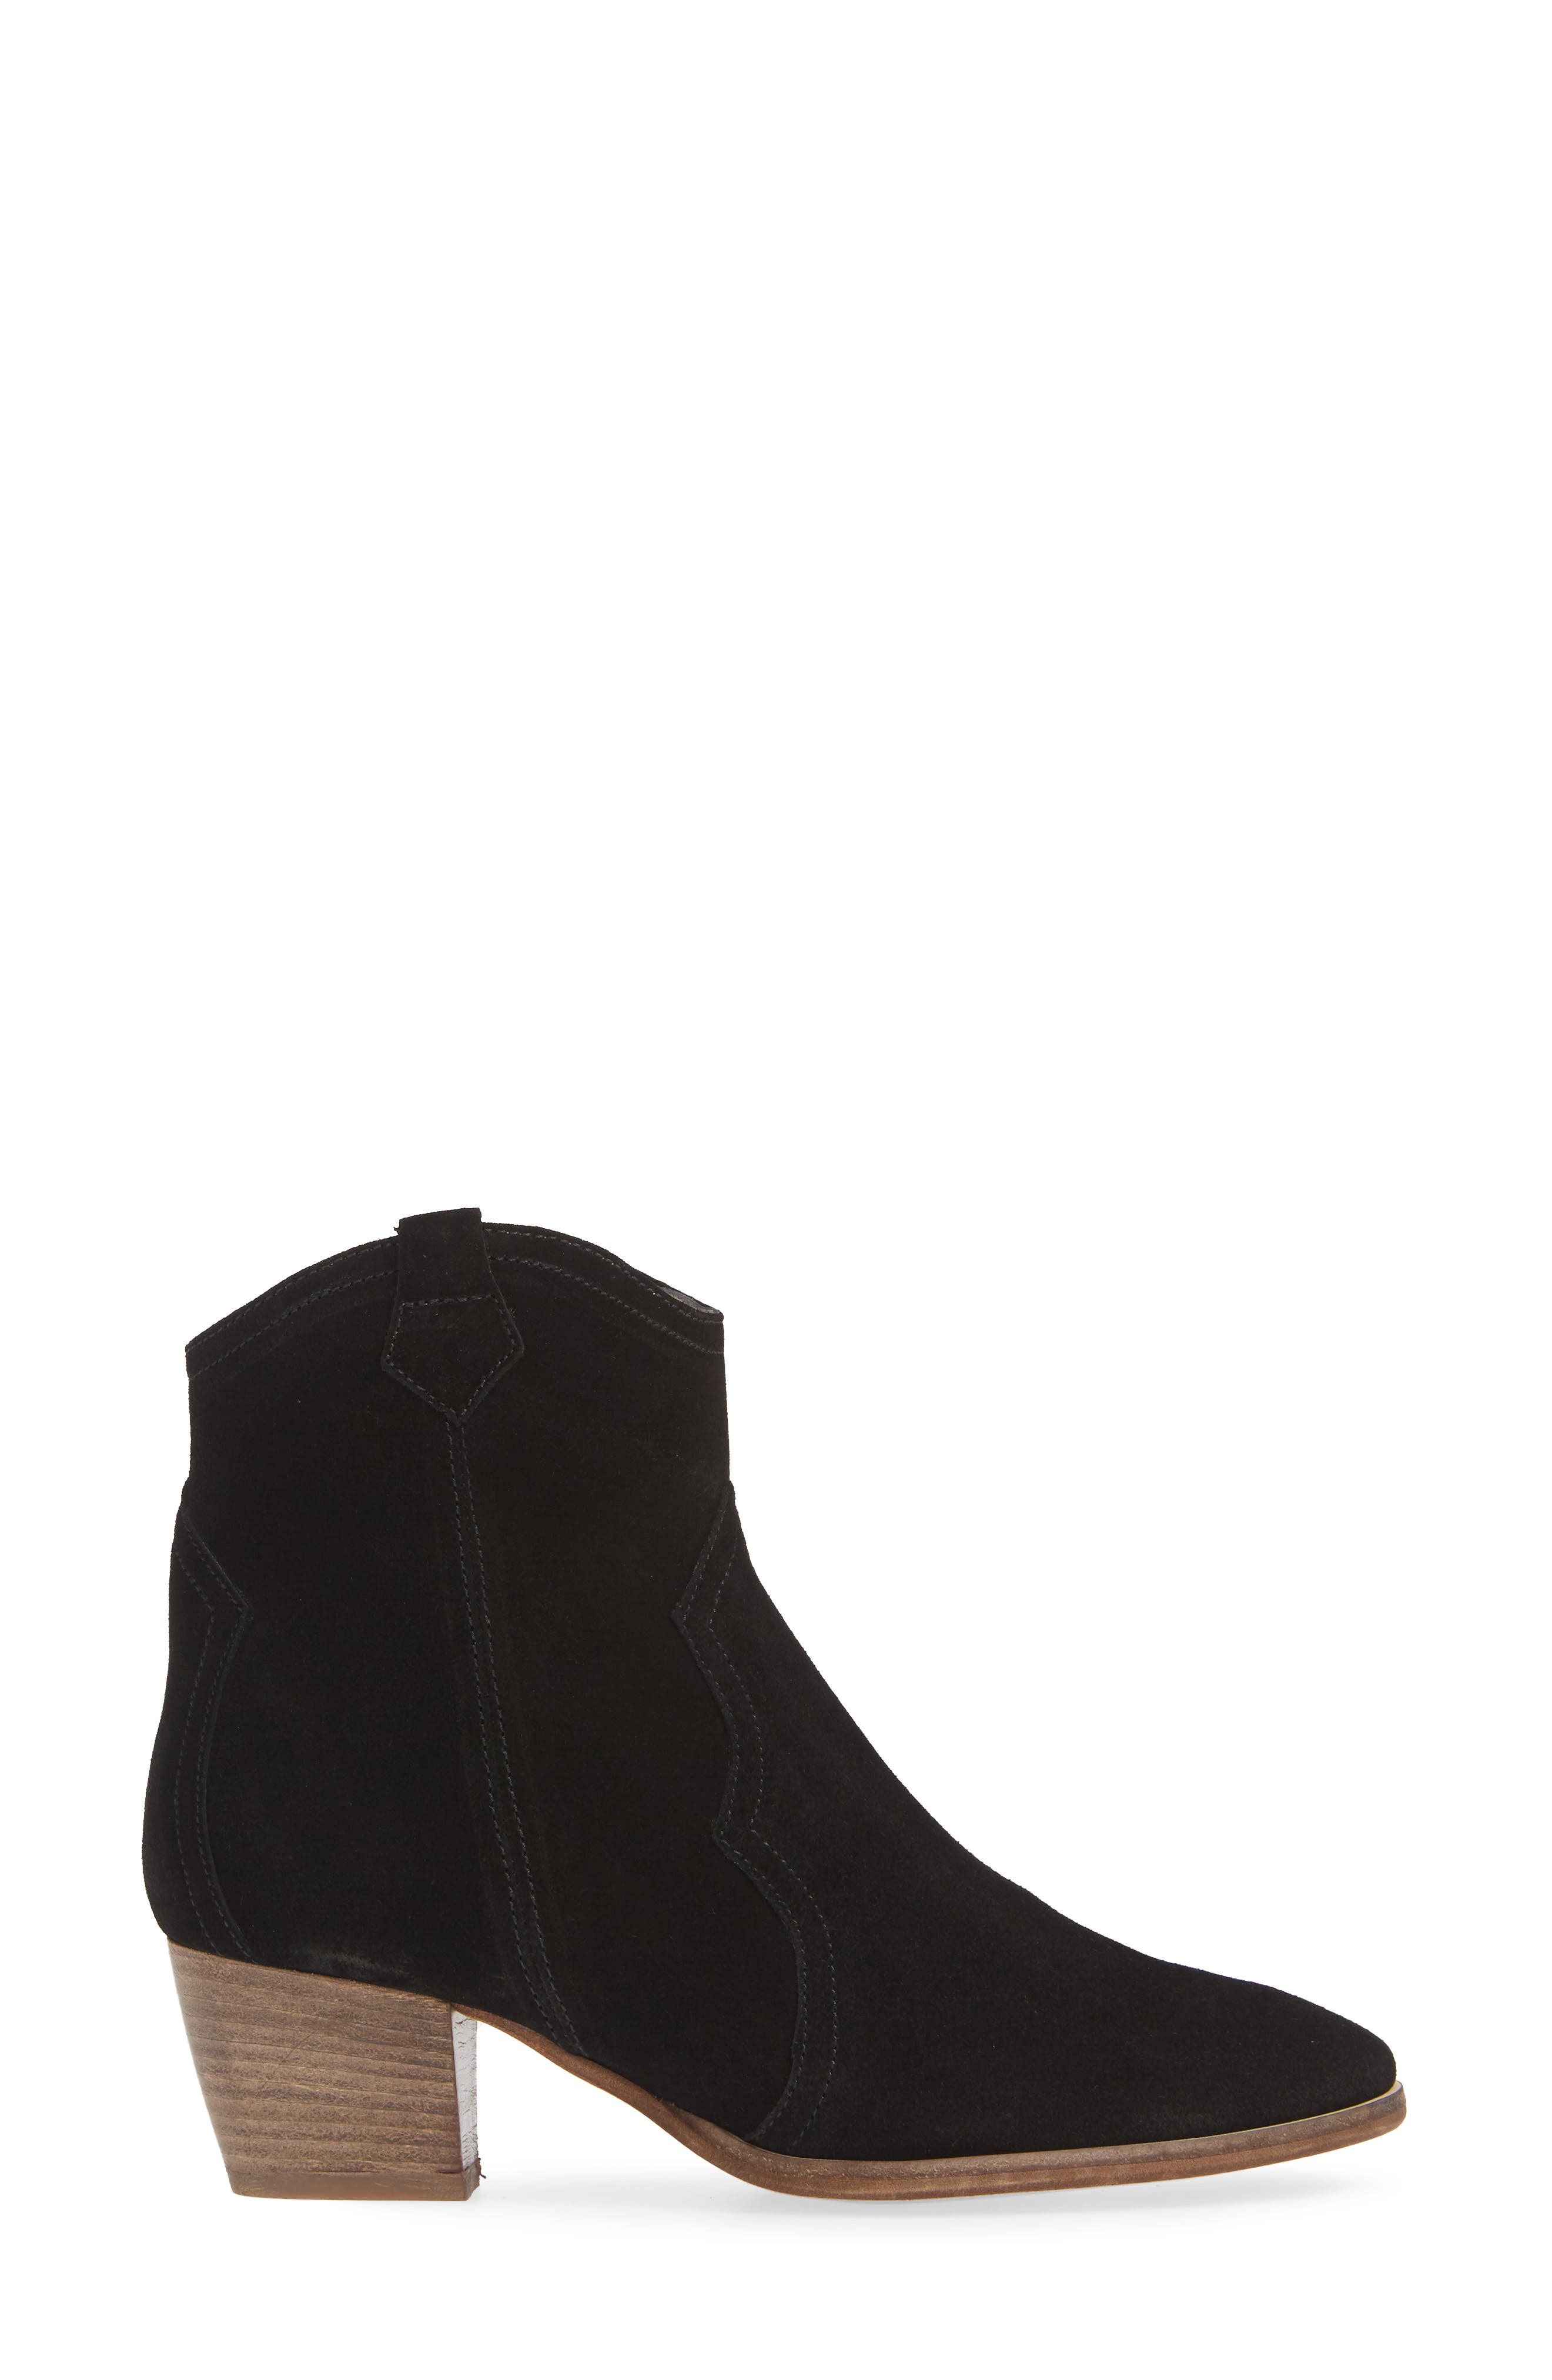 Raggio Western Bootie,                             Alternate thumbnail 3, color,                             BLACK VELOUR SUEDE